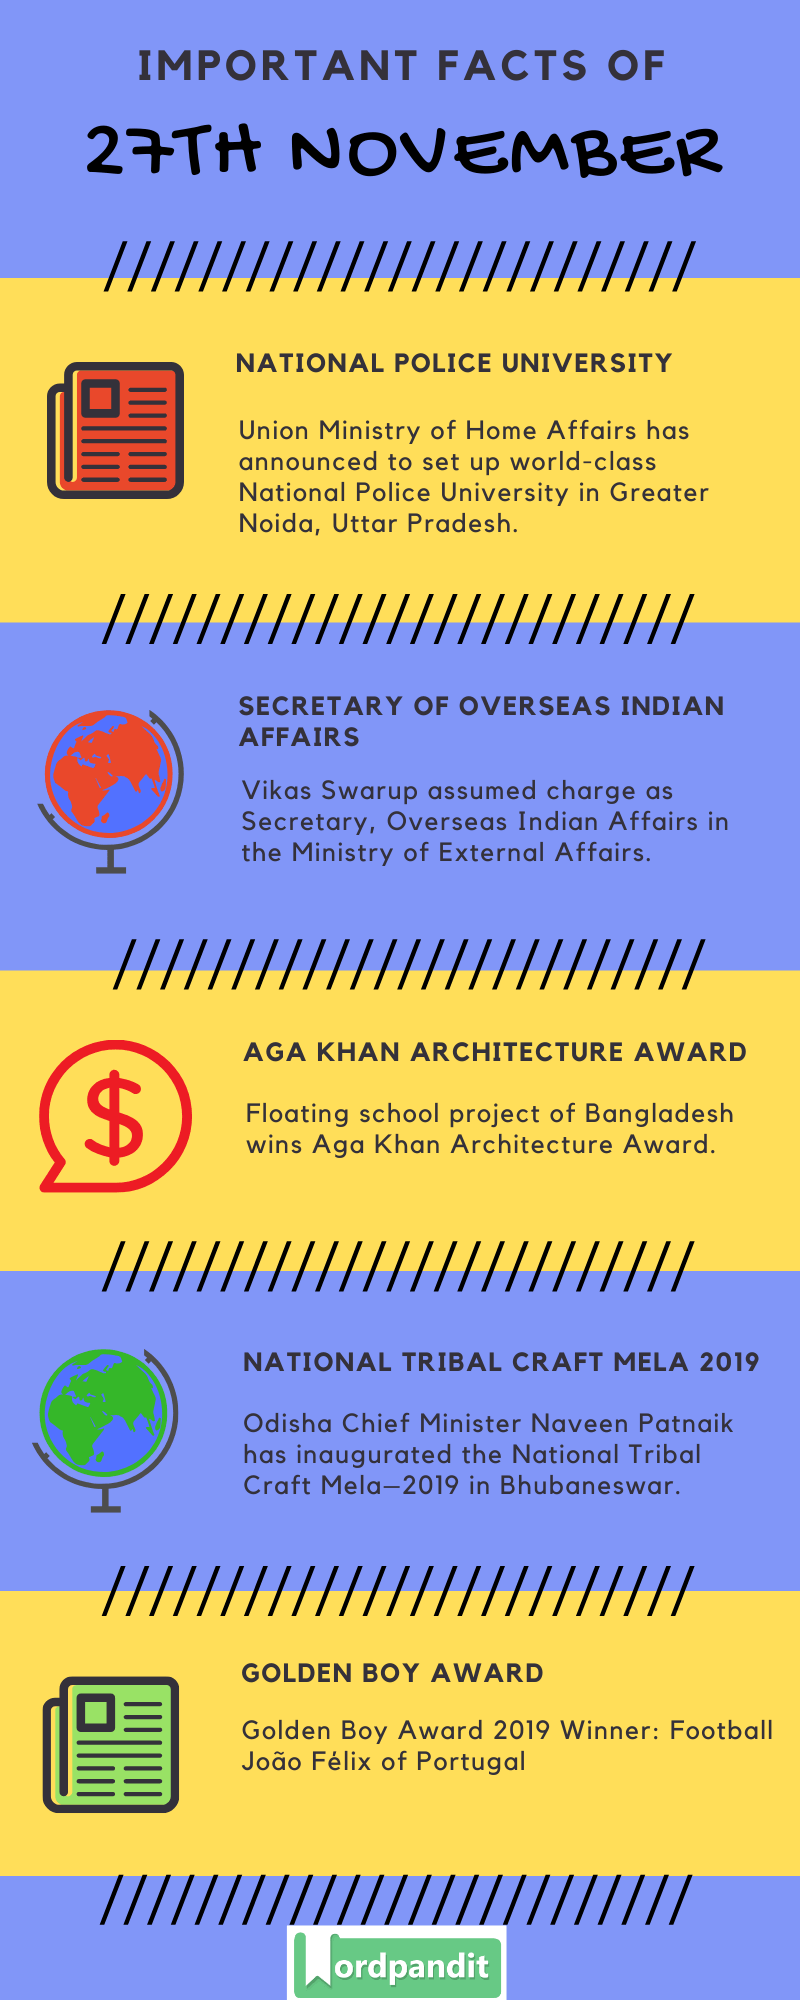 Daily Current Affairs 27 November 2019 Current Affairs Quiz 27 November 2019 Current Affairs Infographic